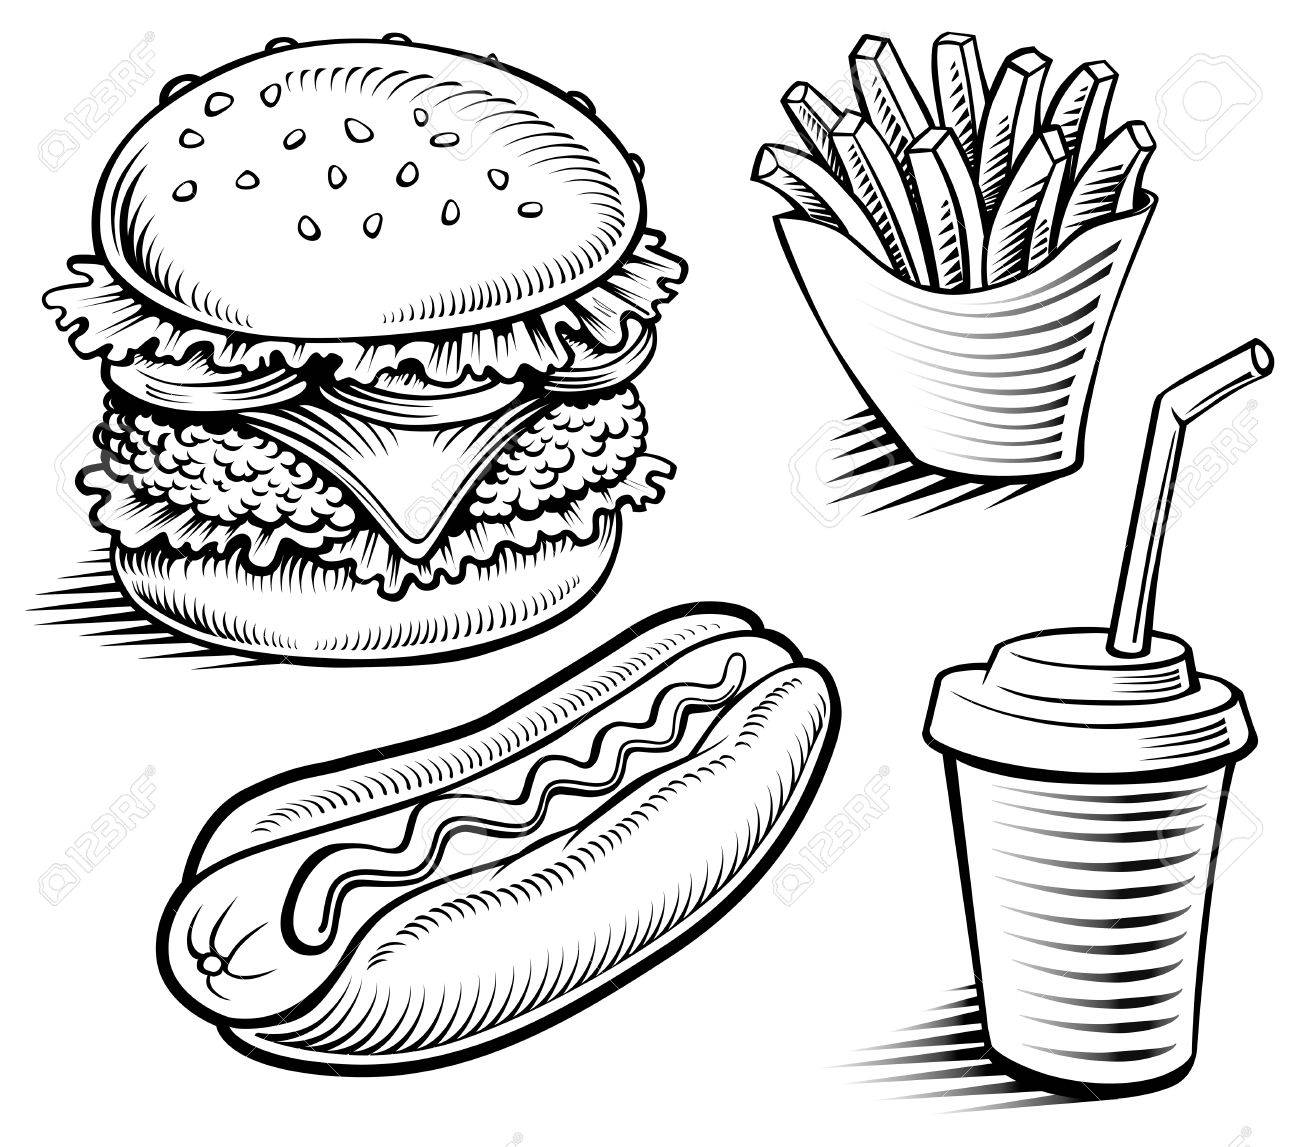 Free Food Drawing At Getdrawings